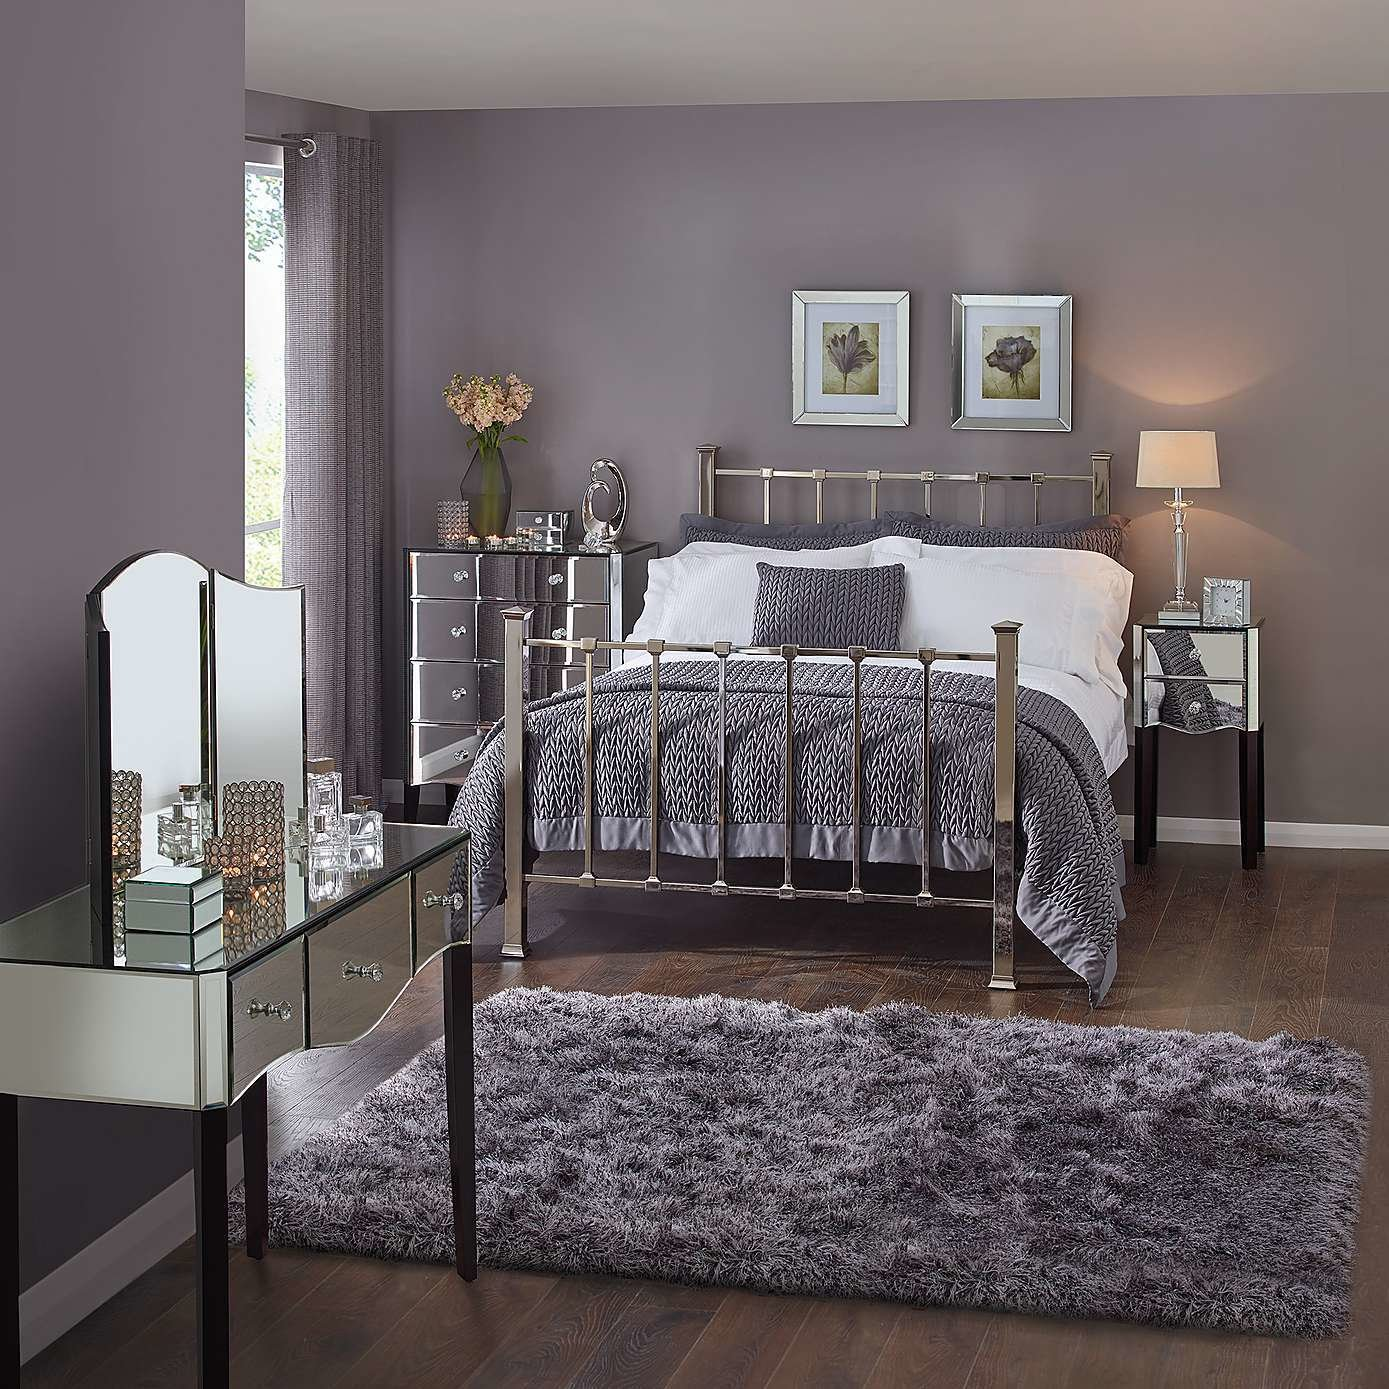 Best The Hows And Whats Of Mirrored Bedroom Furniture – Blogbeen With Pictures